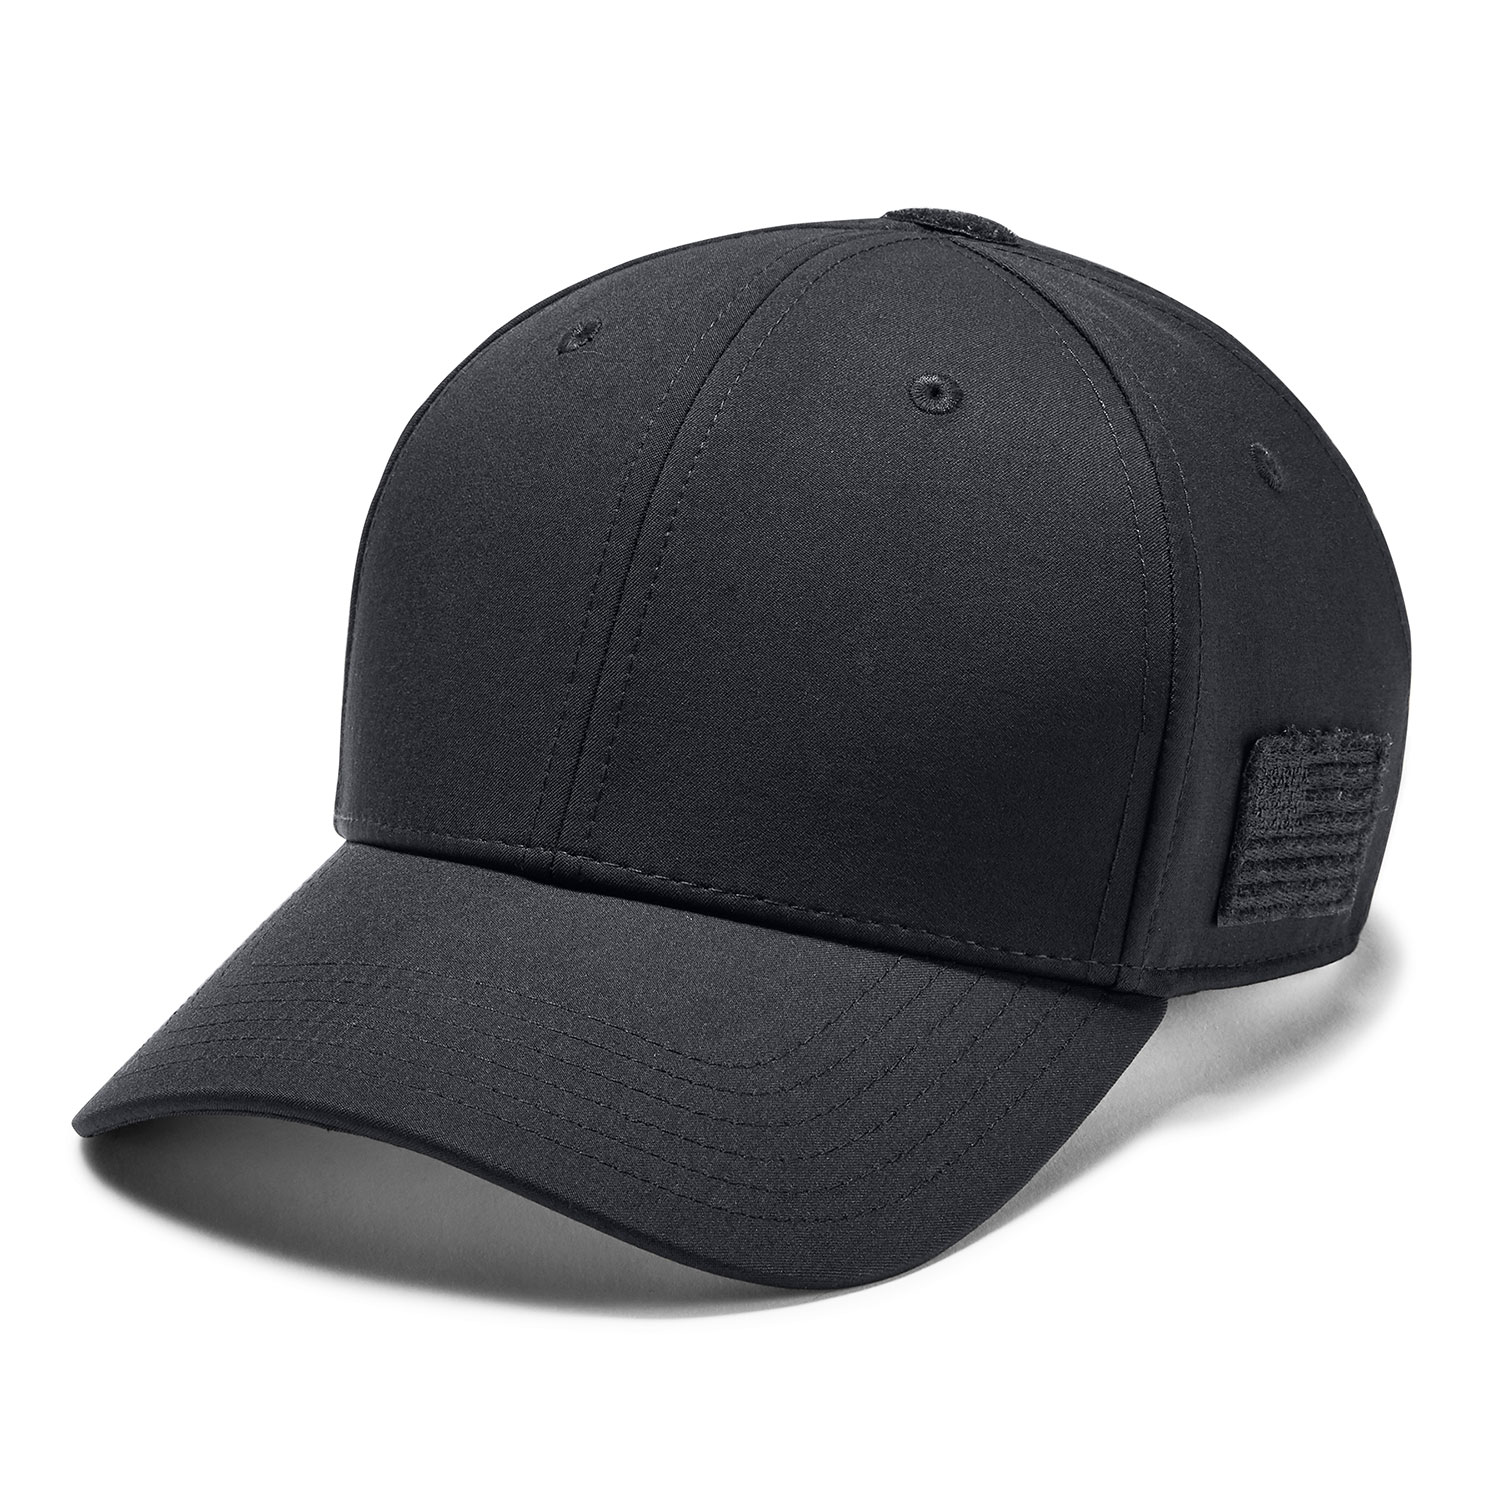 Under Armour Tactical Friend or Foe 2.0 Cap